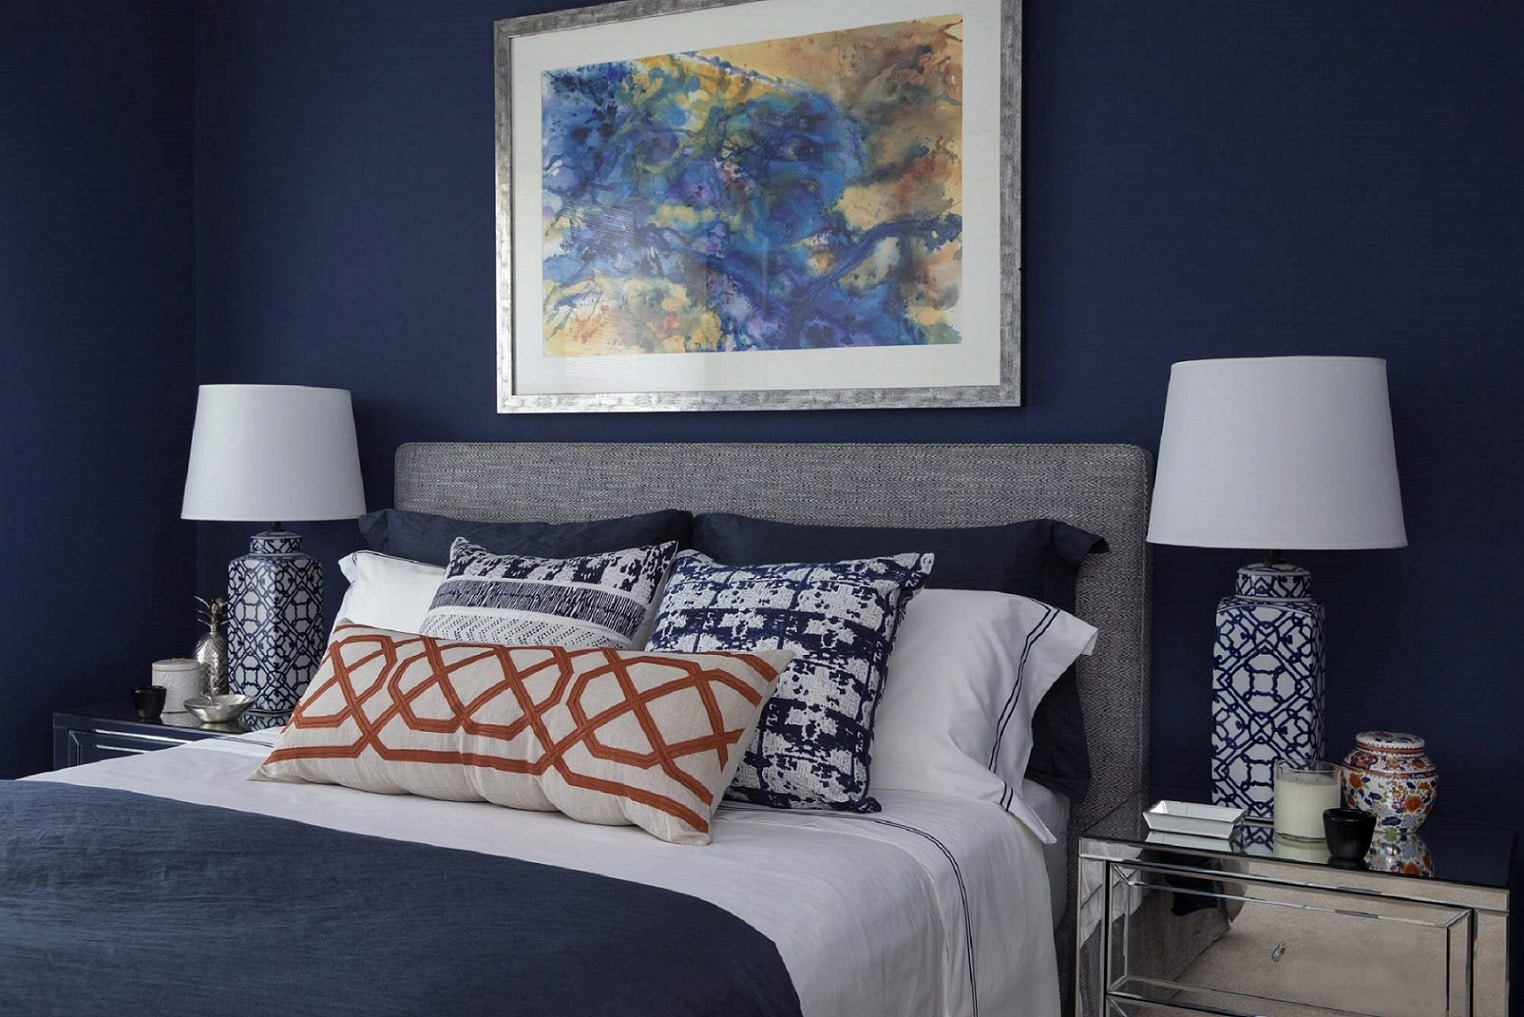 guest bedroom classic orange blue white patterns abstract art